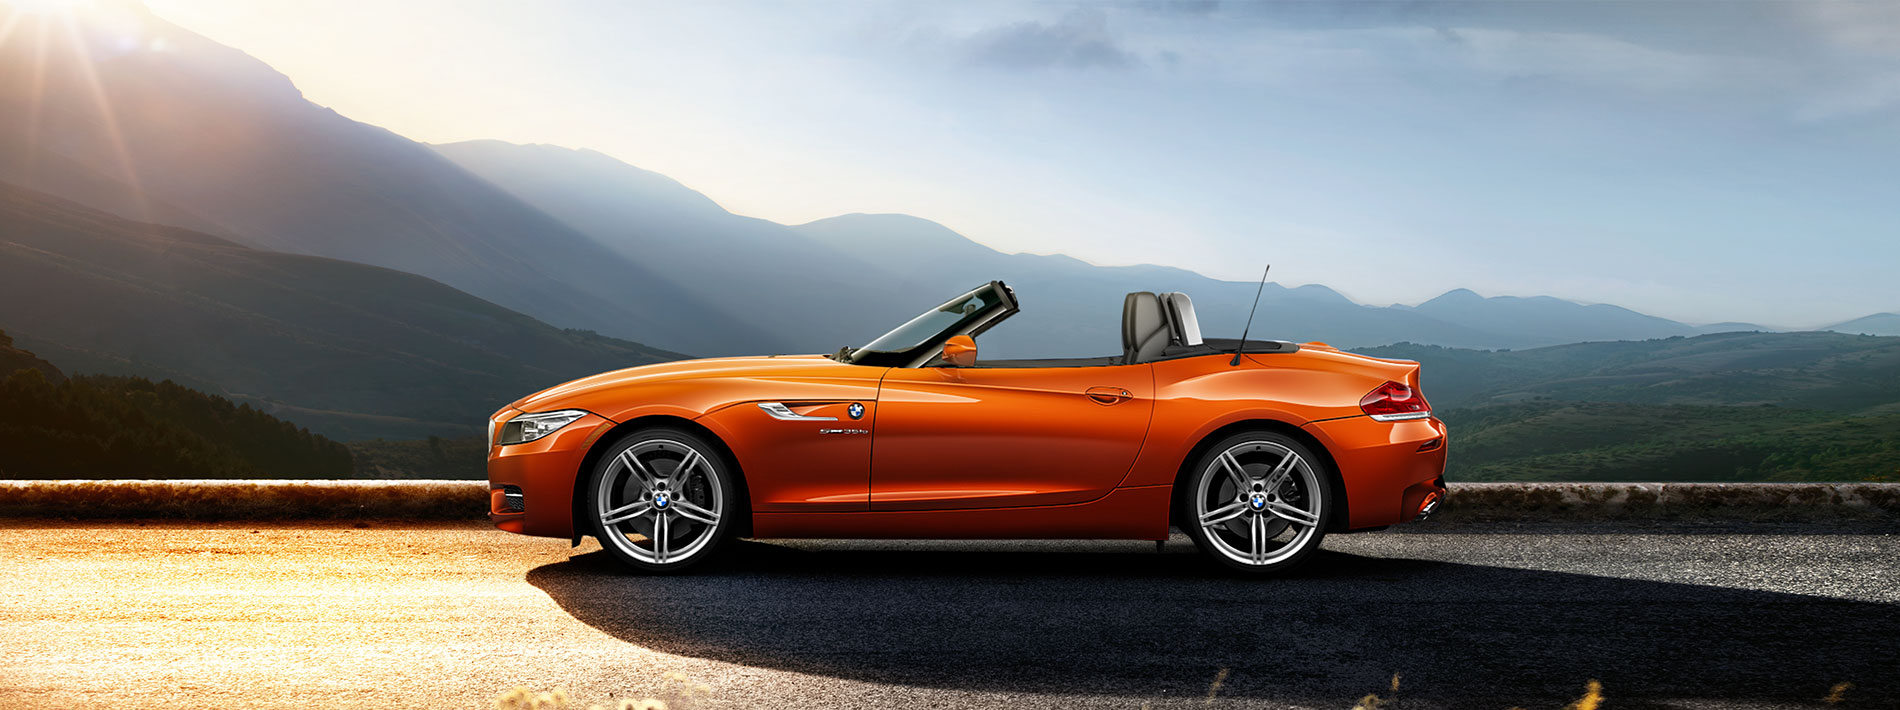 New Bmw 174 Z4 Lease Offers Calabasas California